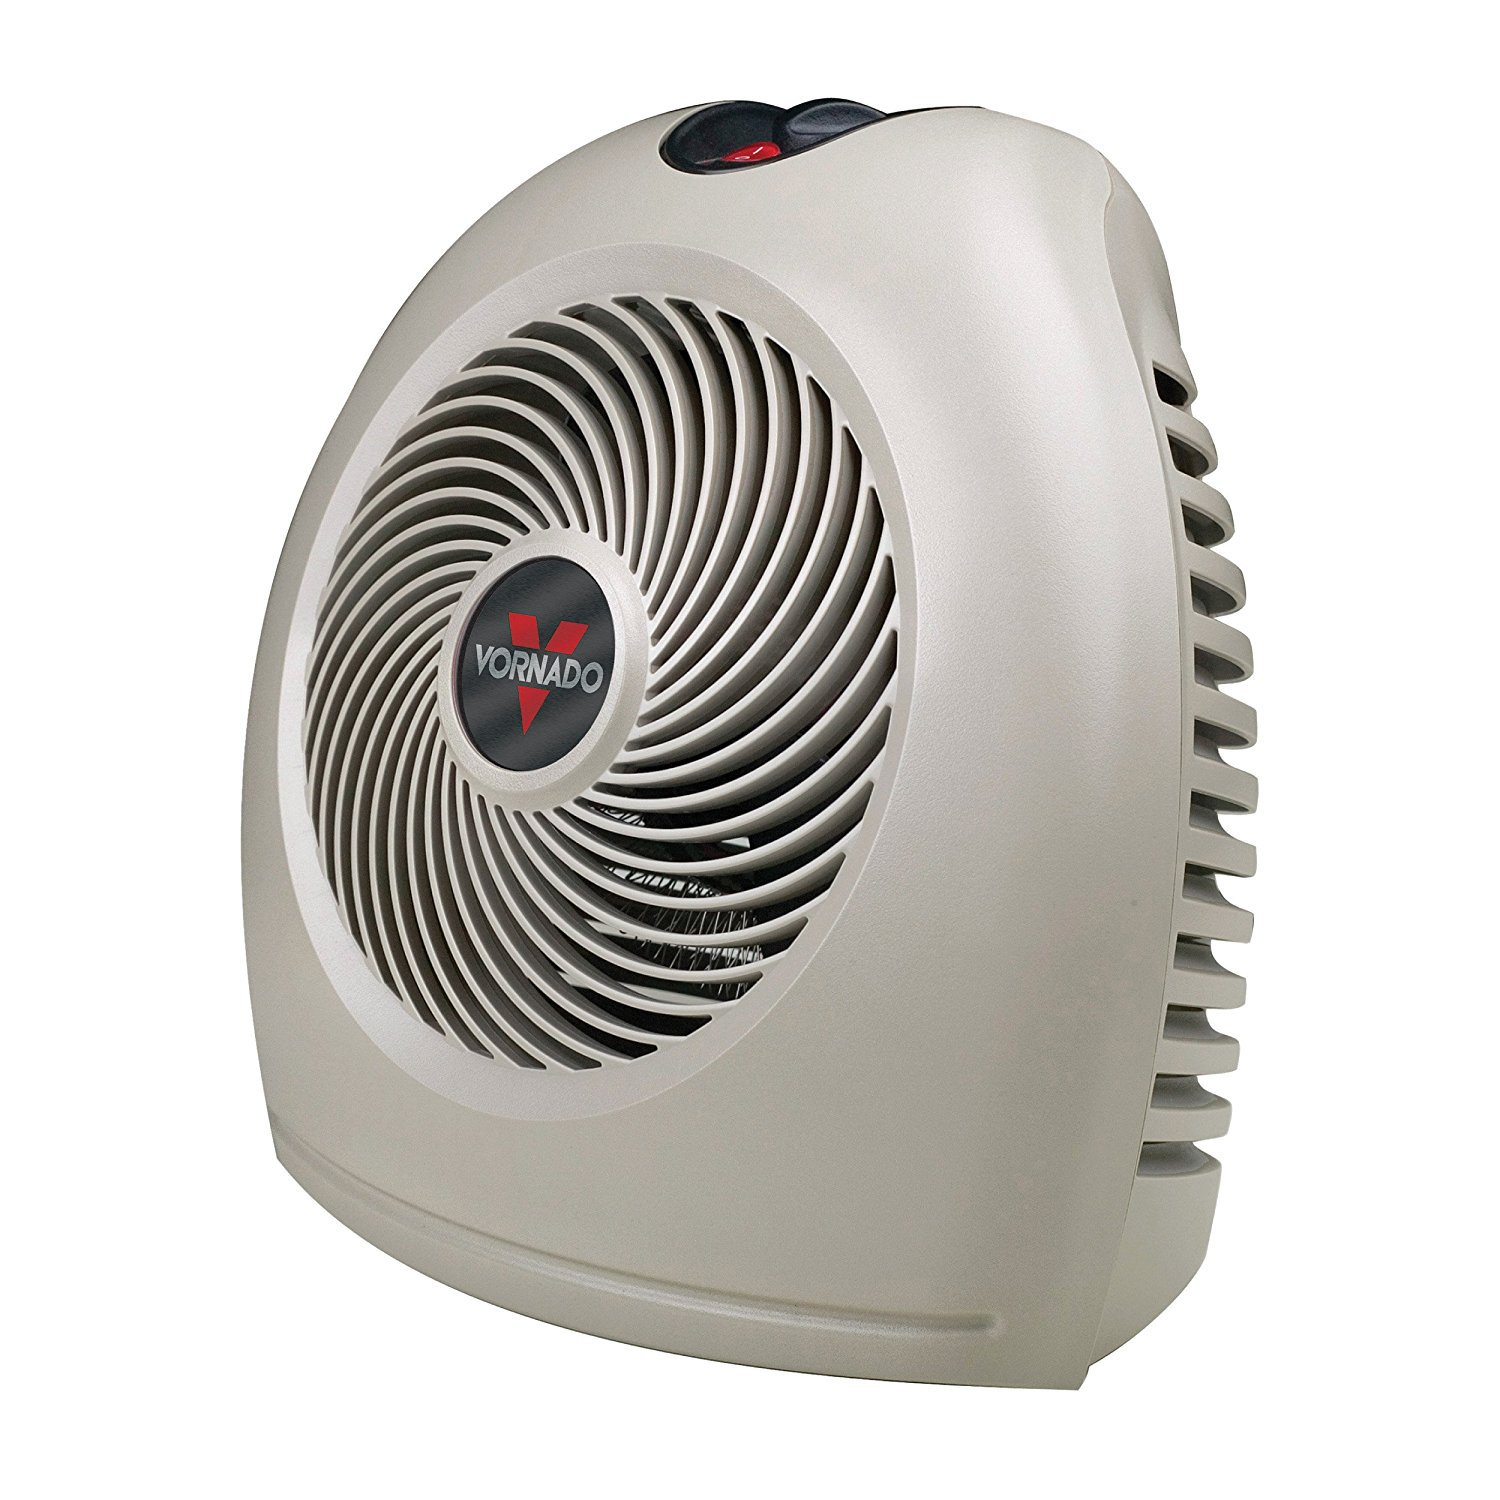 Vornado VH2 Whole Room Vortex Heater by Vornado